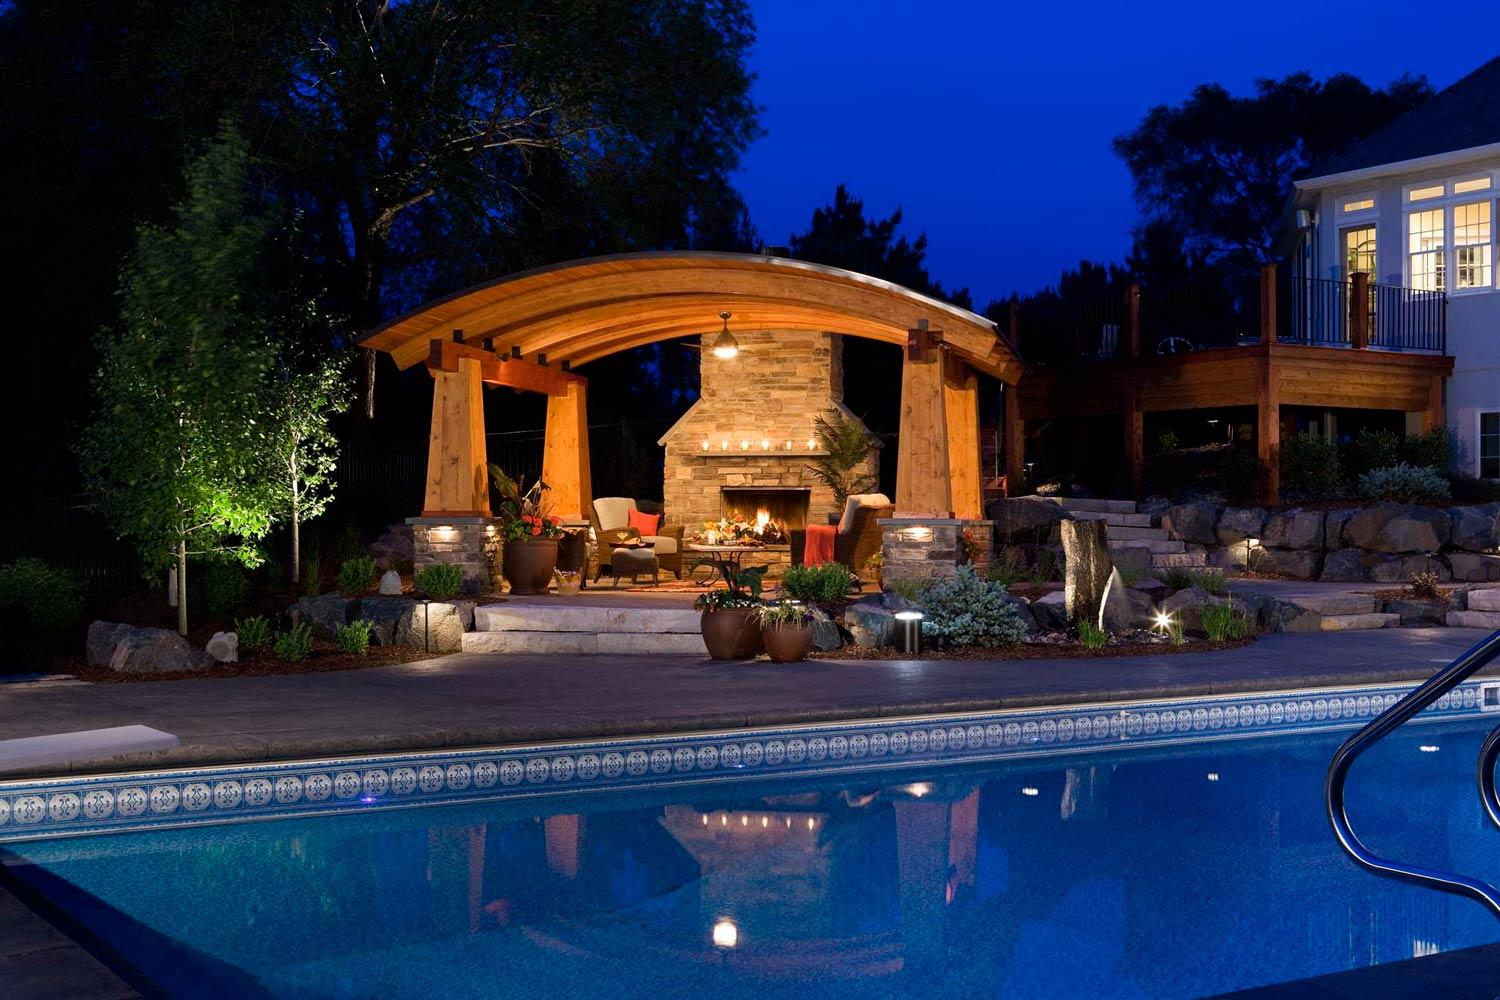 Outdoor living room, swimming pool, and elevated deck at night.